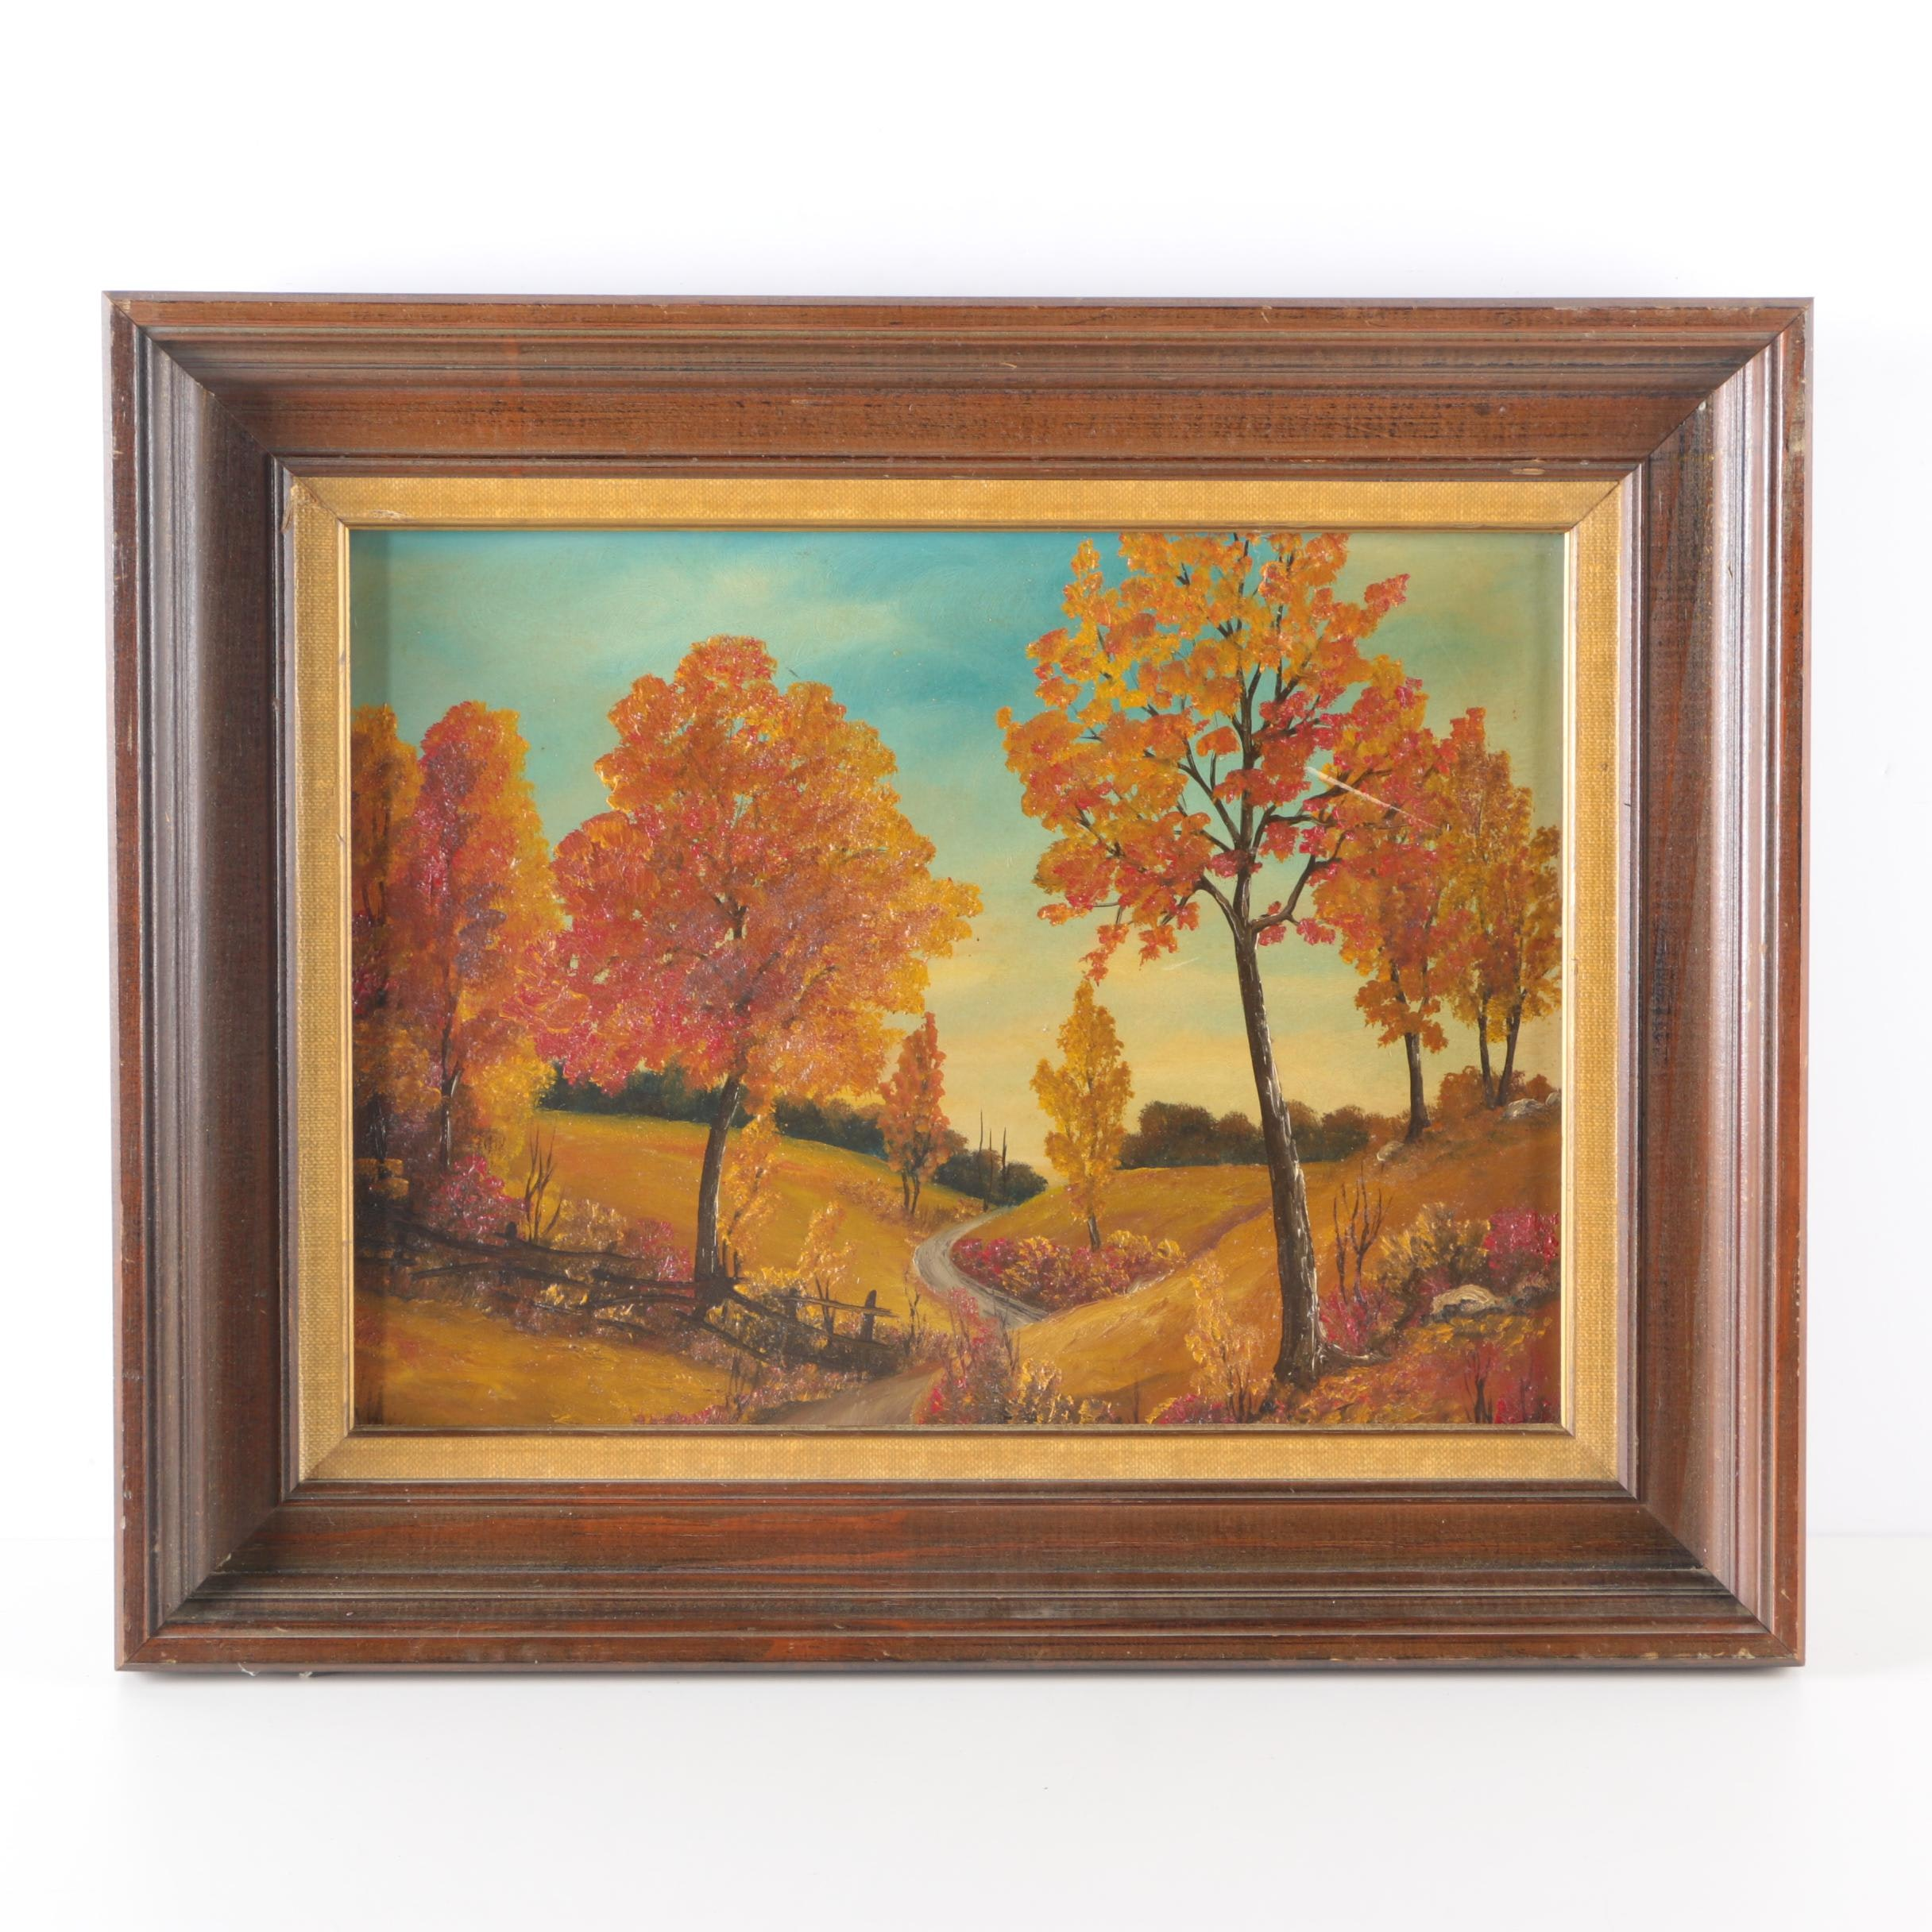 Oil on Academy Board Painting of Autumn Landscape